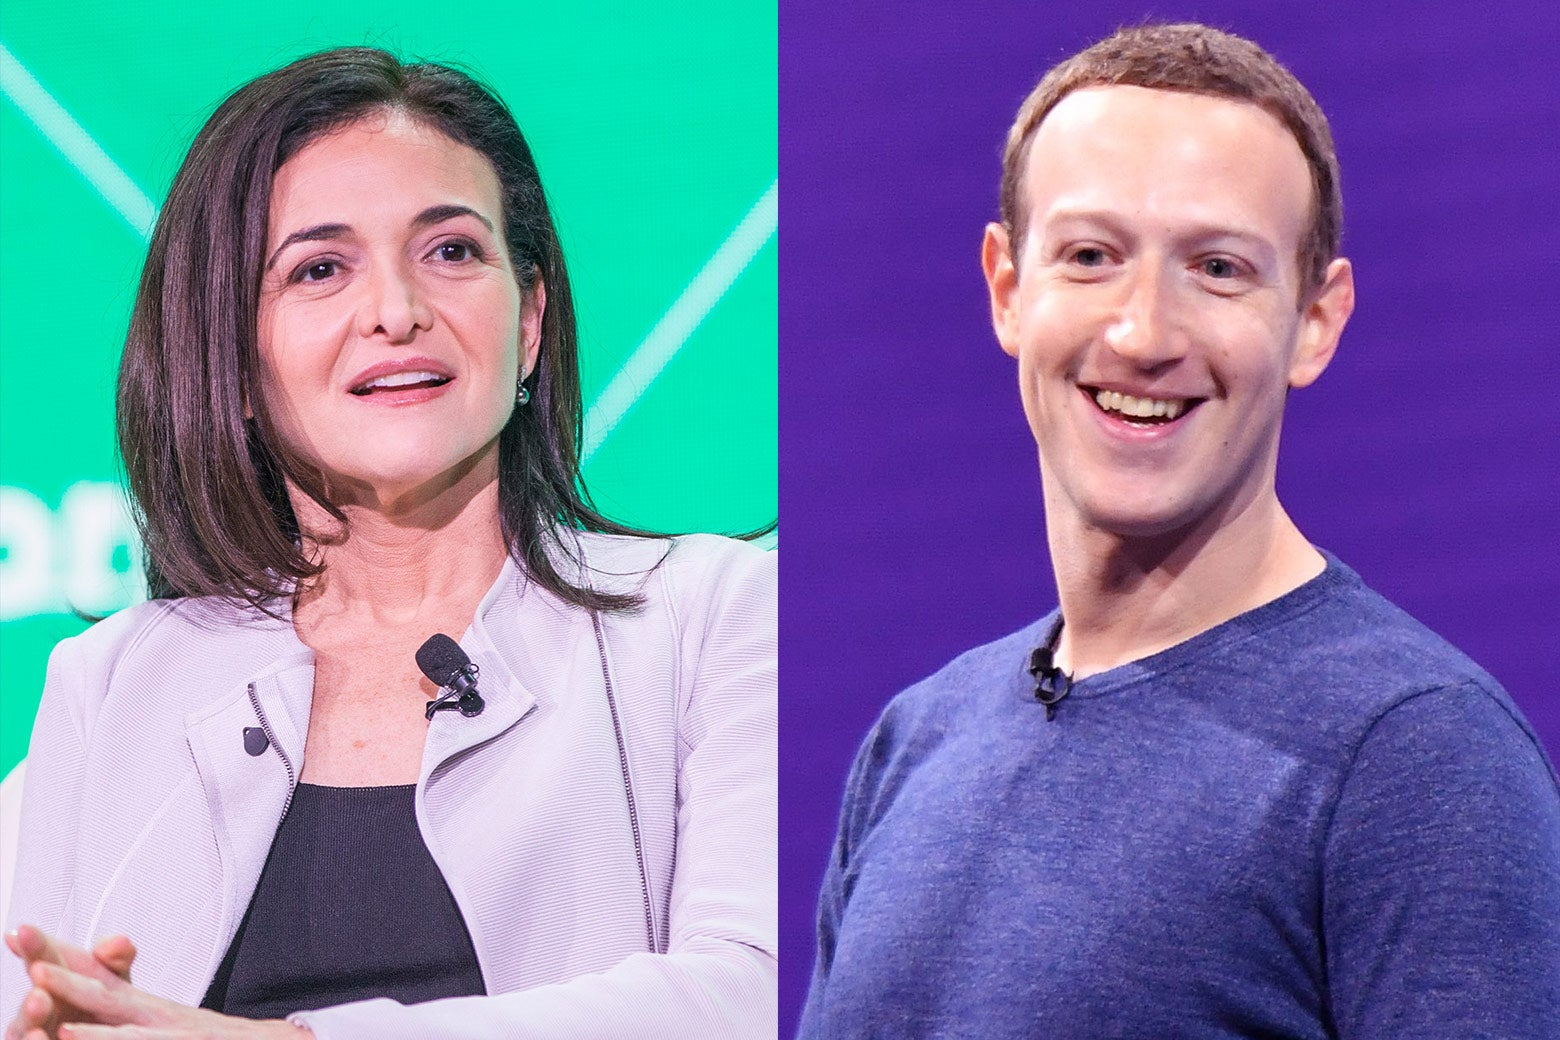 """After the 2016 election, Mark Zuckerberg went on a """"listening tour"""" while Sheryl Sandberg reportedly orchestrated an oppo campaign against Facebook's critics."""